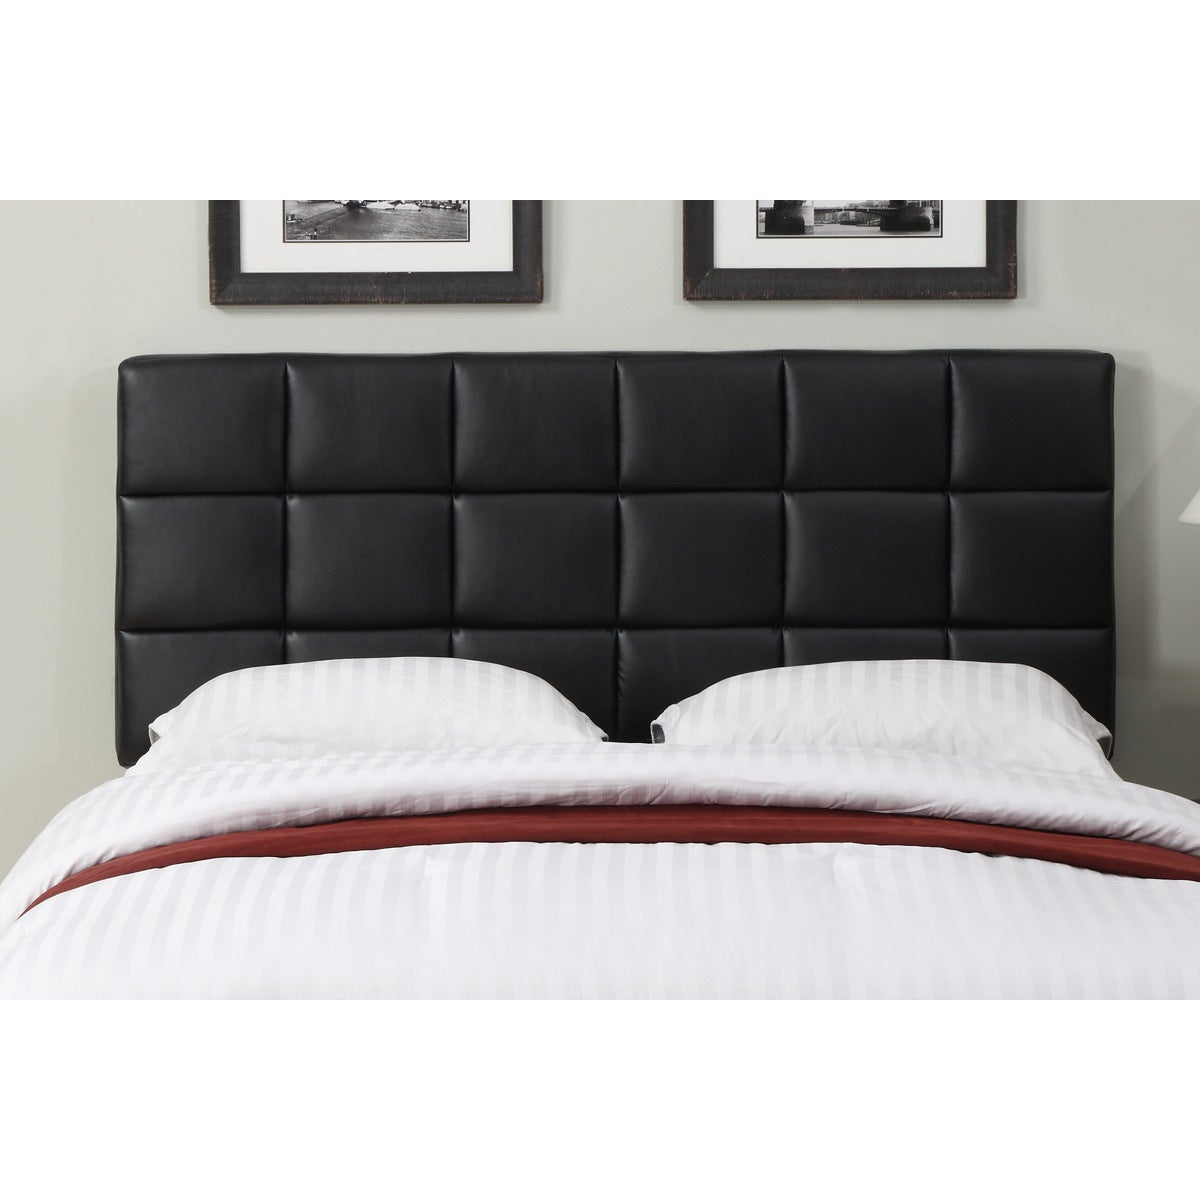 Black Leather Full Queen Size Square Tufted Headboard Overstock 8361303